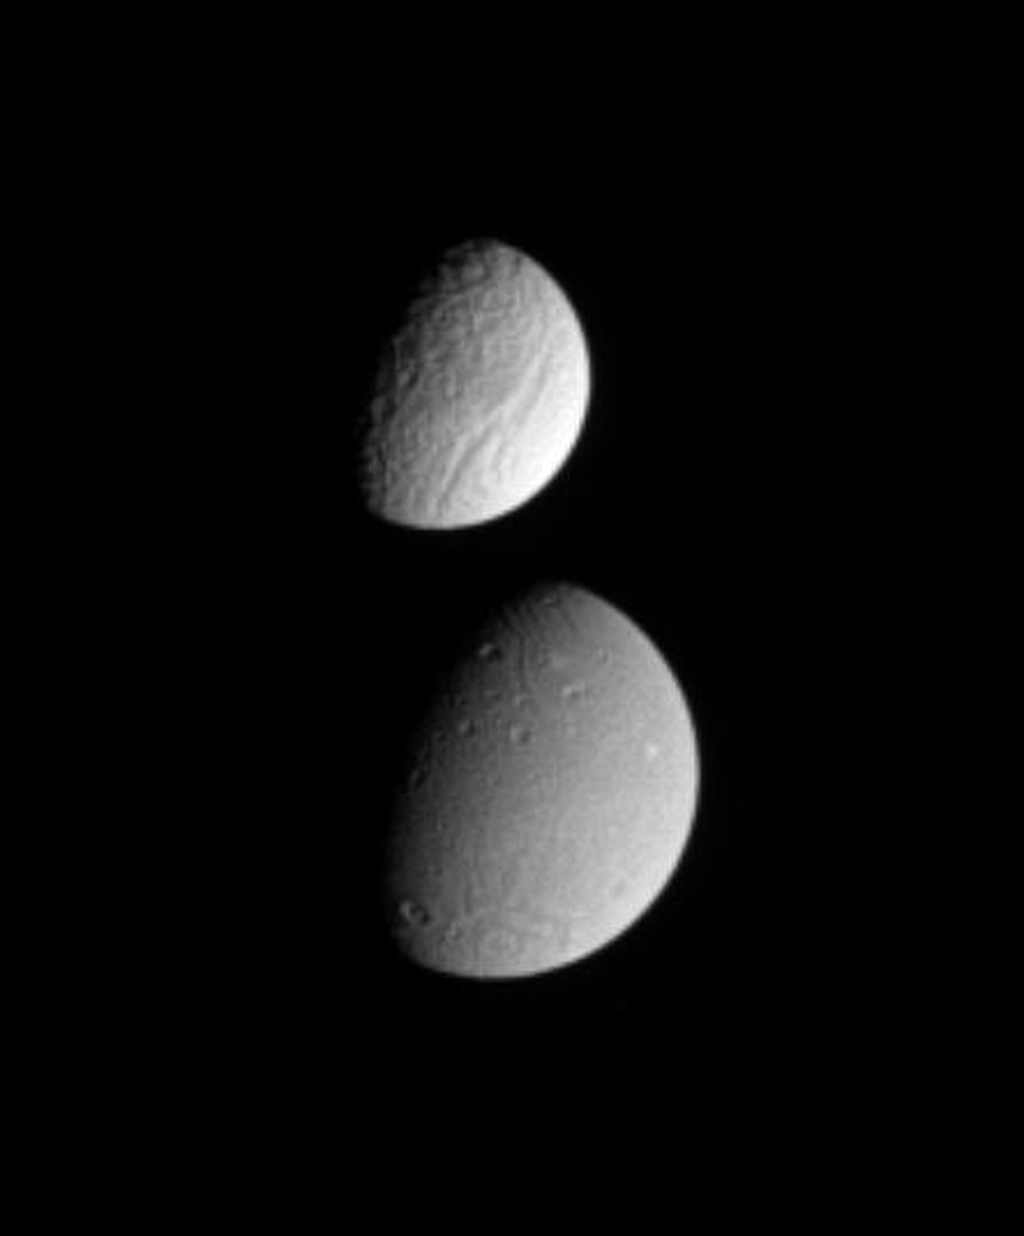 This brief movie catches Saturn's moon Tethys partially occulting the moon Dione. Images in this frame from a movie sequence were taken in visible light with NASA's Cassini spacecraft's narrow-angle camera on Sept. 11, 2005.